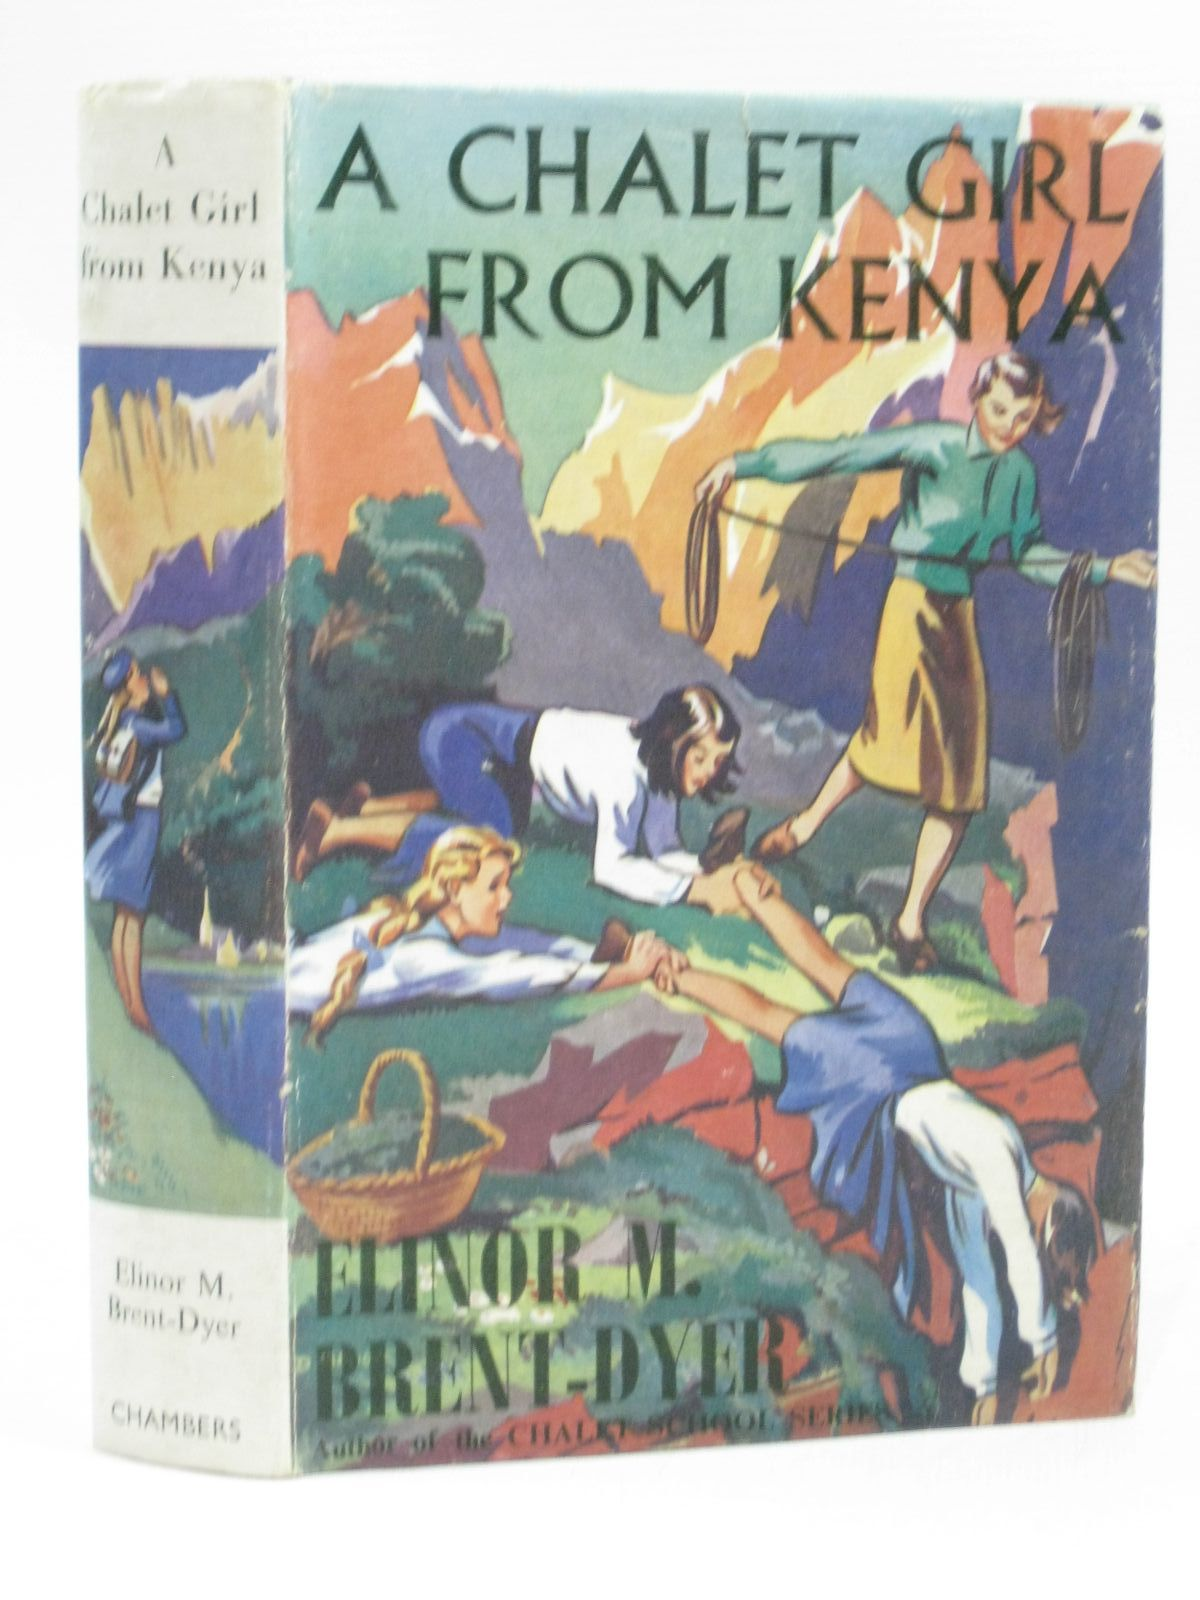 Cover of A CHALET GIRL FROM KENYA by Elinor M. Brent-Dyer